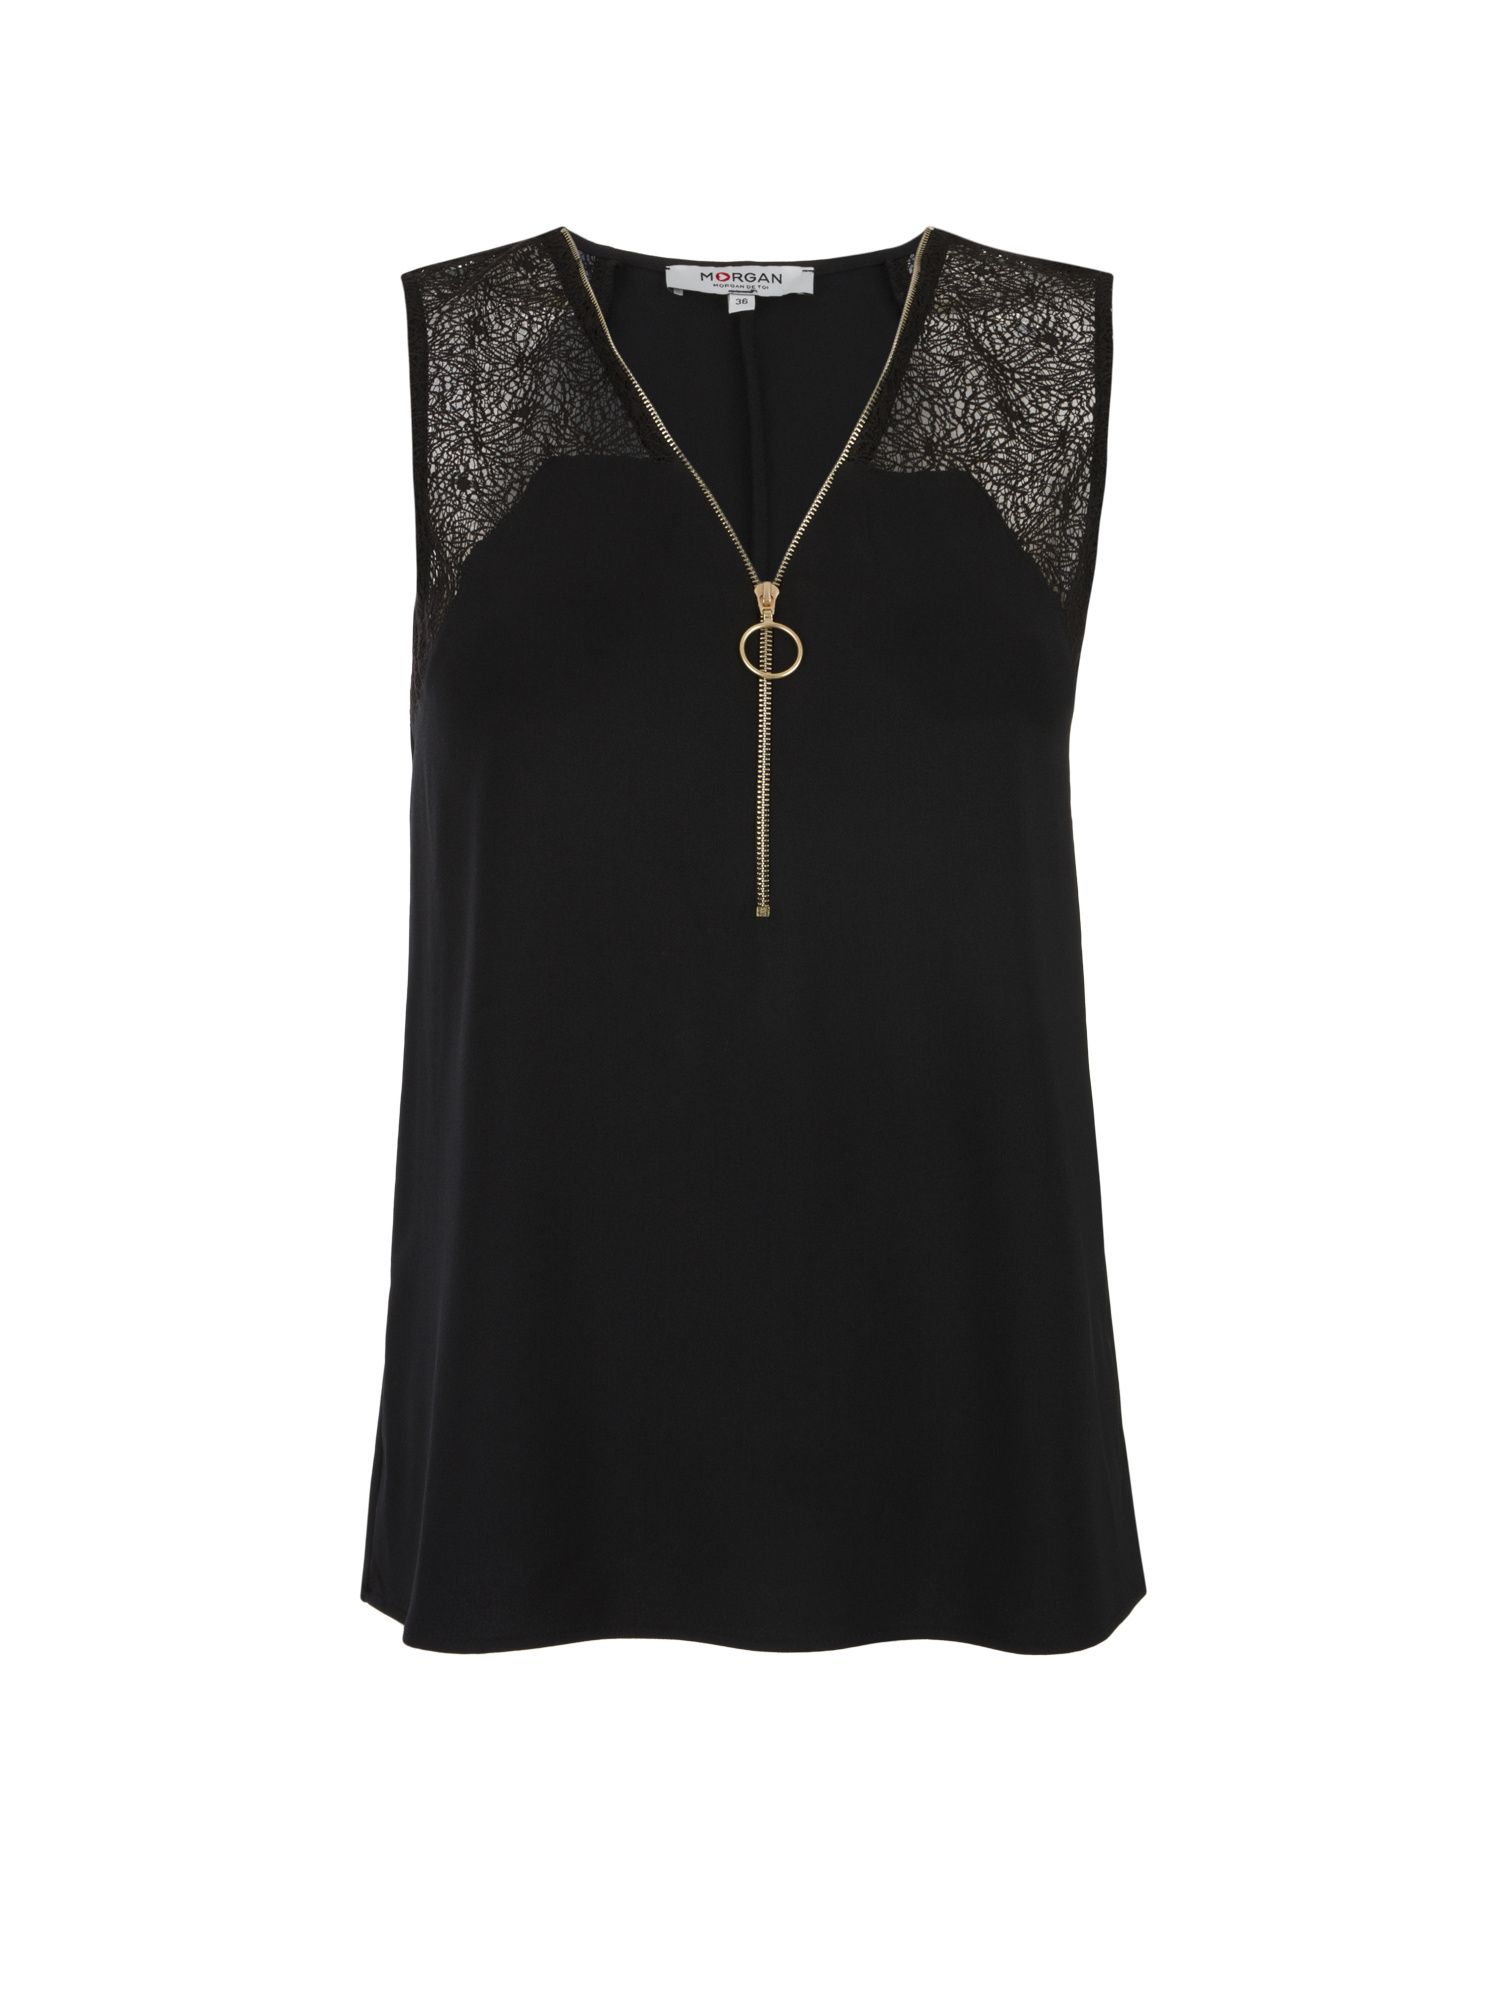 Morgan Crepe And Lace Zippered Top, Black